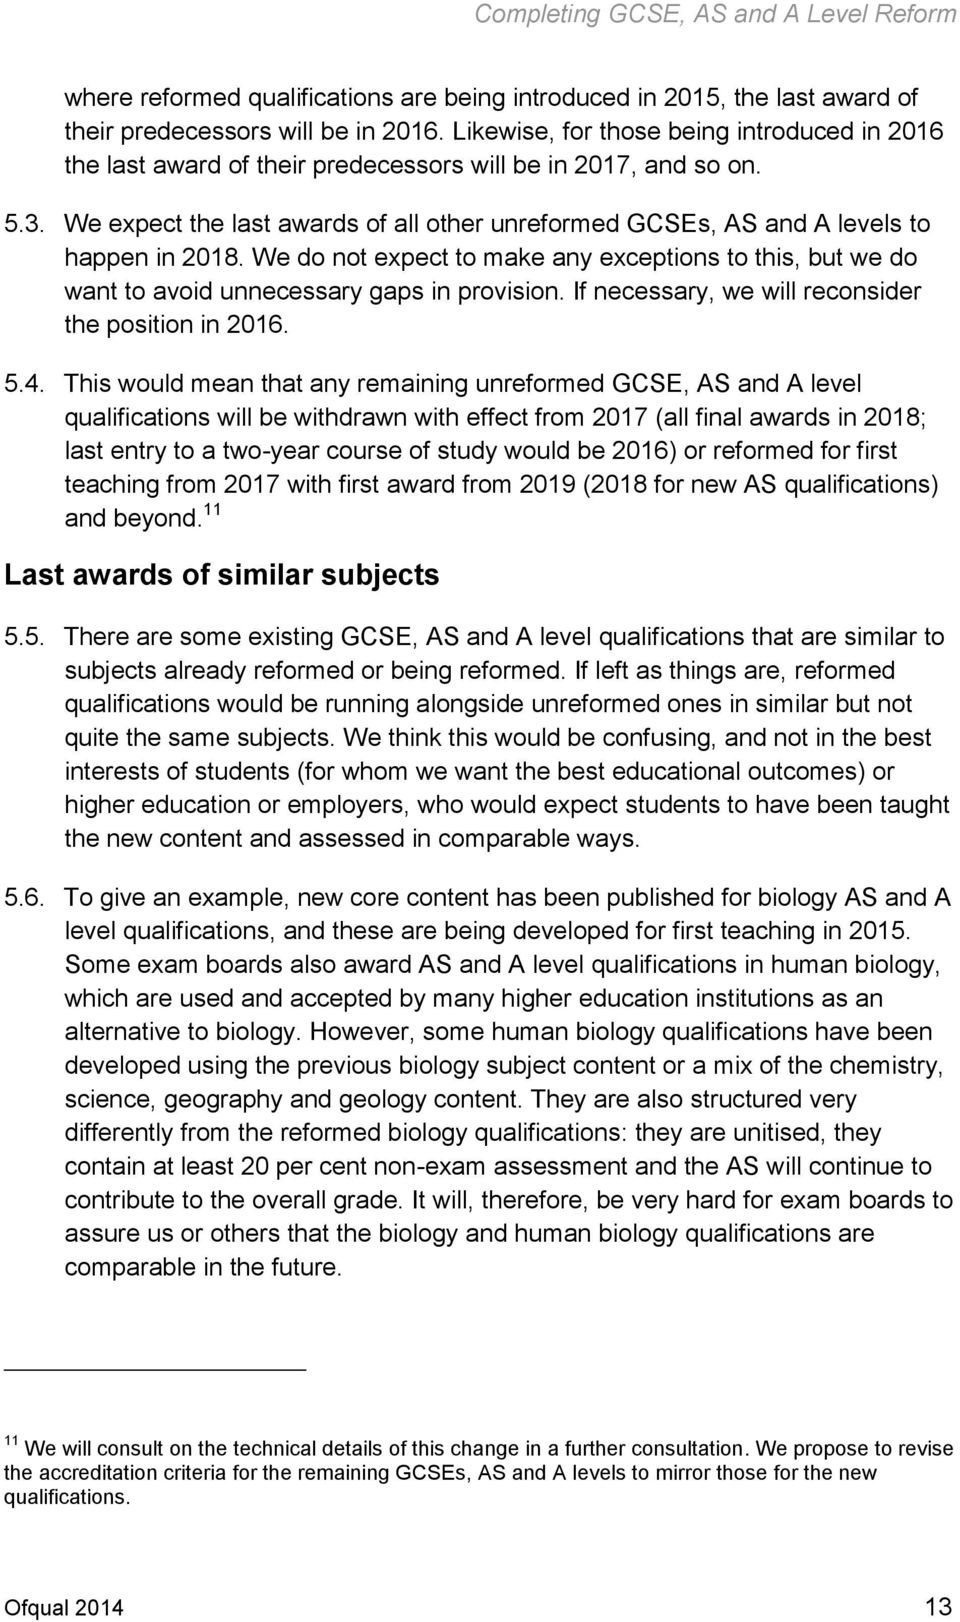 We expect the last awards of all other unreformed GCSEs, AS and A levels to happen in 2018. We do not expect to make any exceptions to this, but we do want to avoid unnecessary gaps in provision.